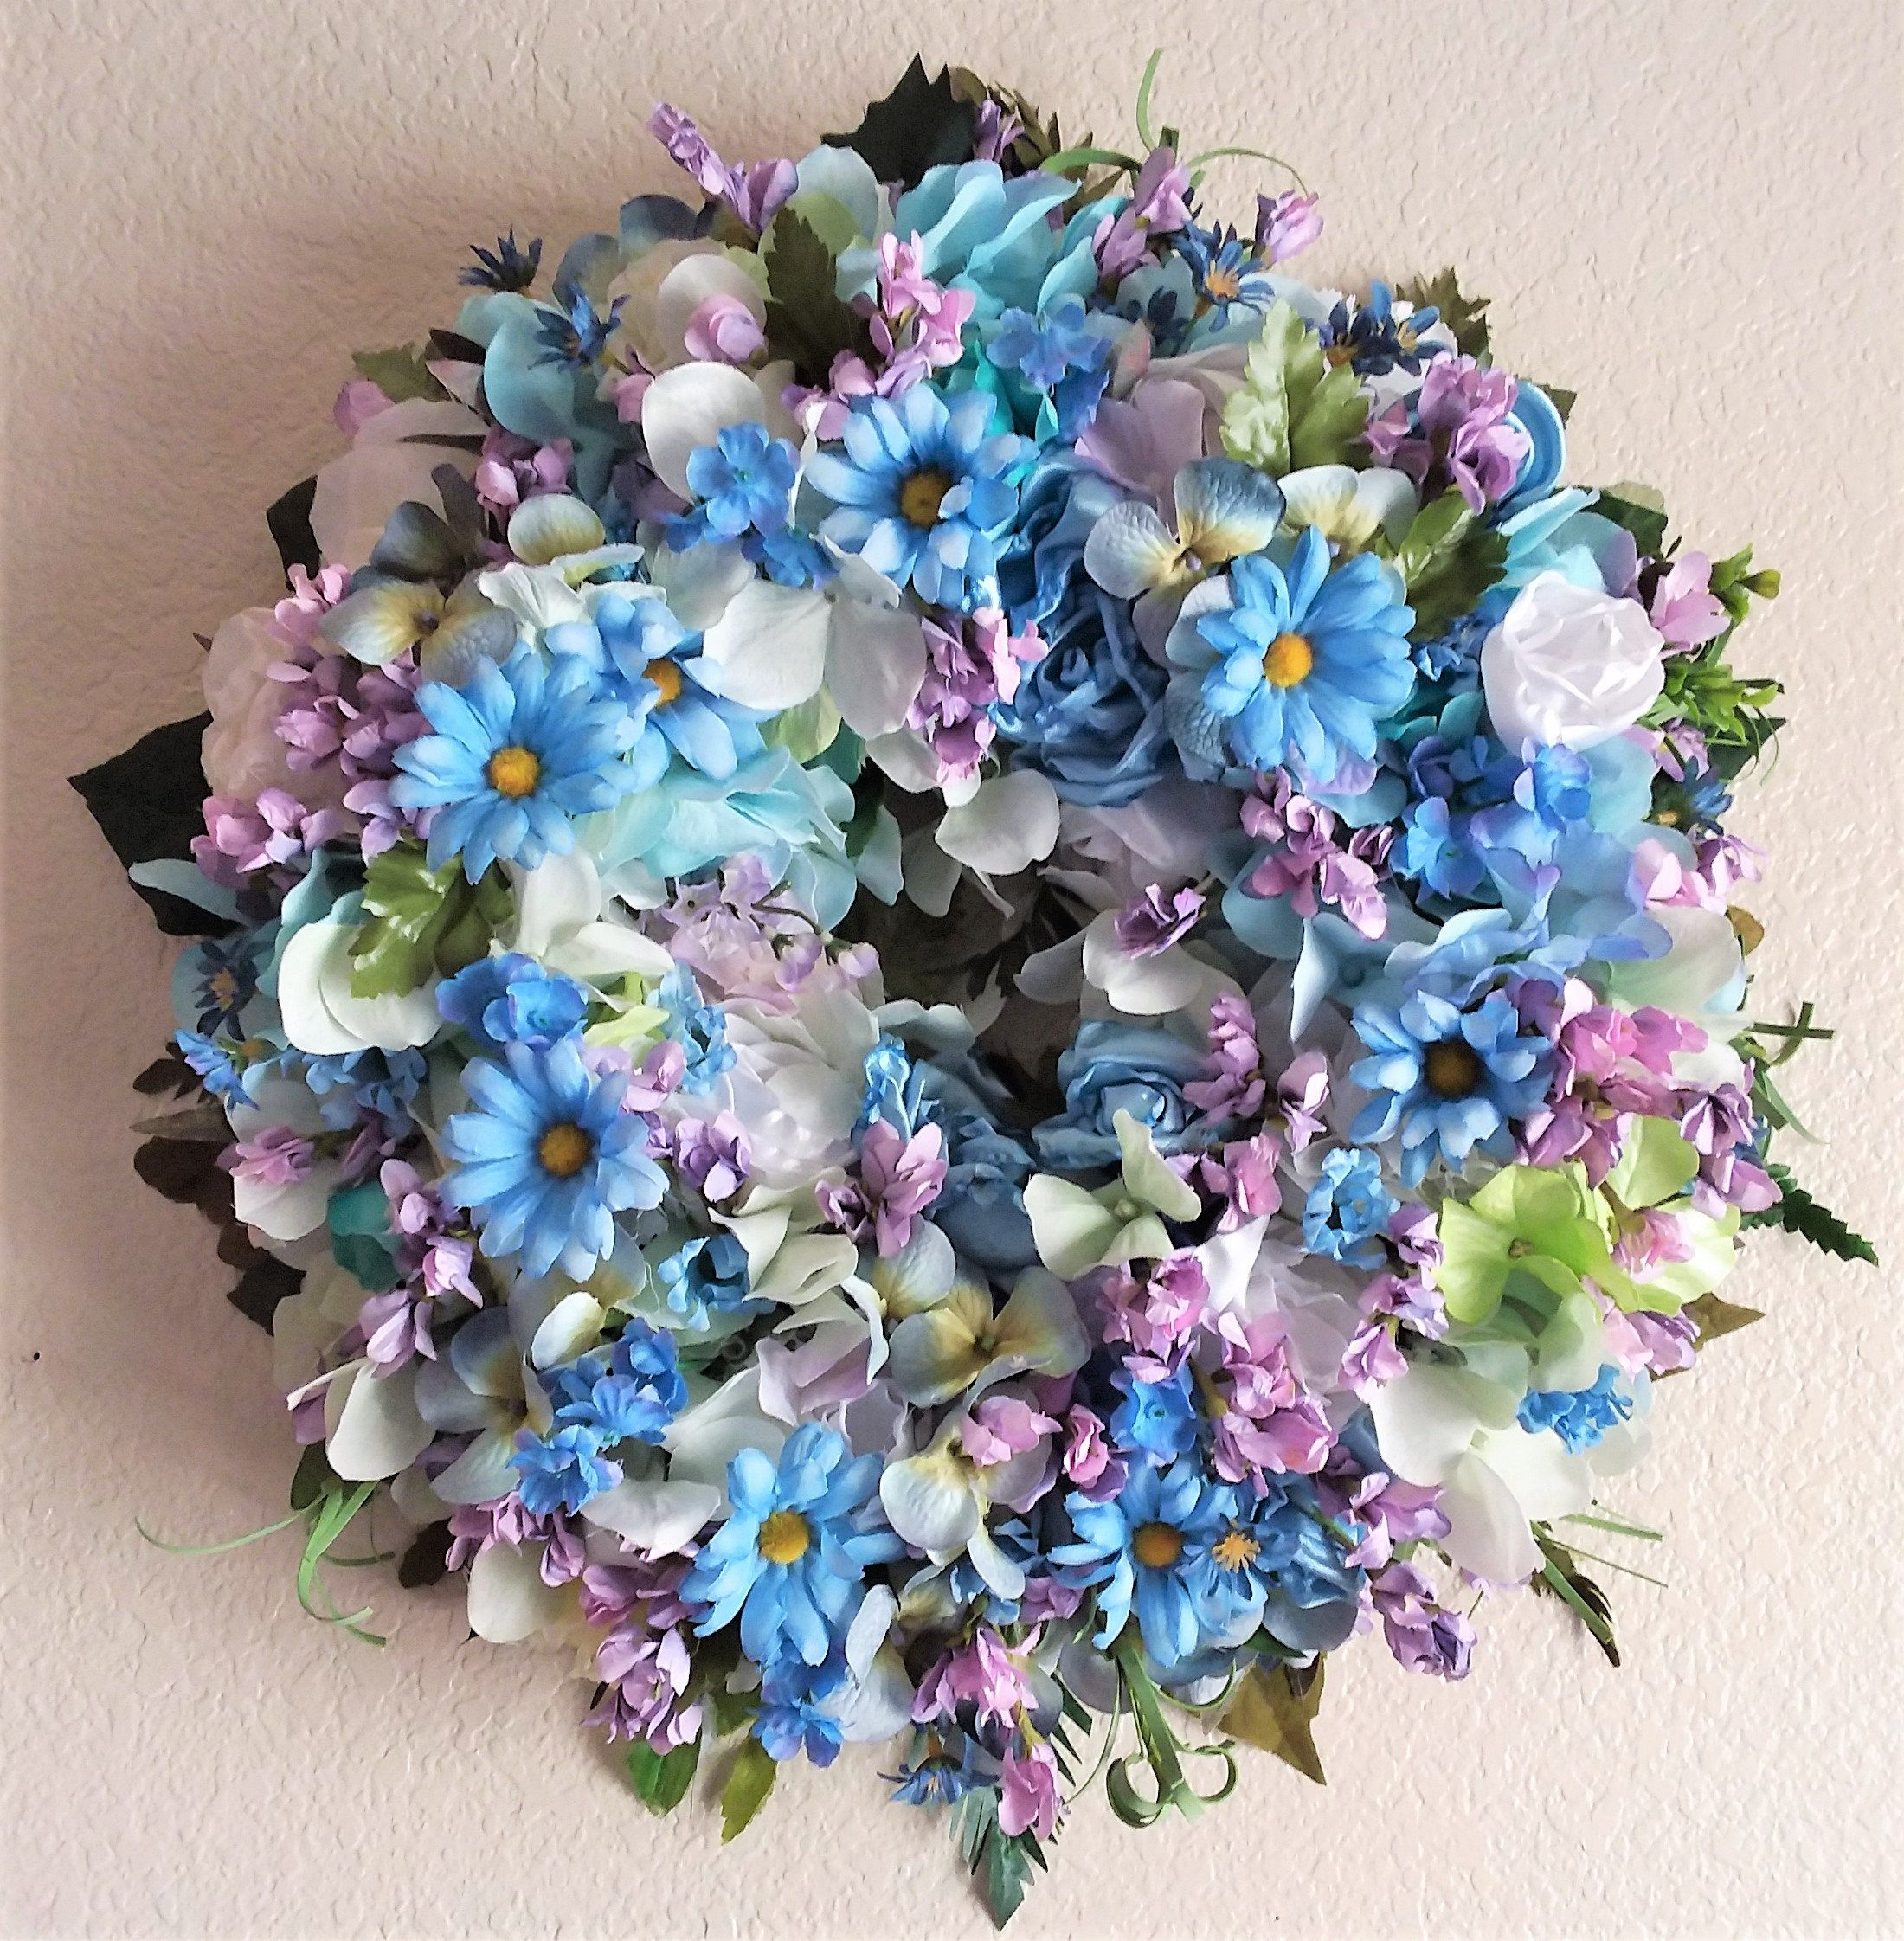 Summer Wreath-The DAISIES IN JUNE Wreath-Summer Wall Decor-Summer Door Decor-Blue Daisy Wreath-Blue Room Decor-Blue and Purple Wreath images